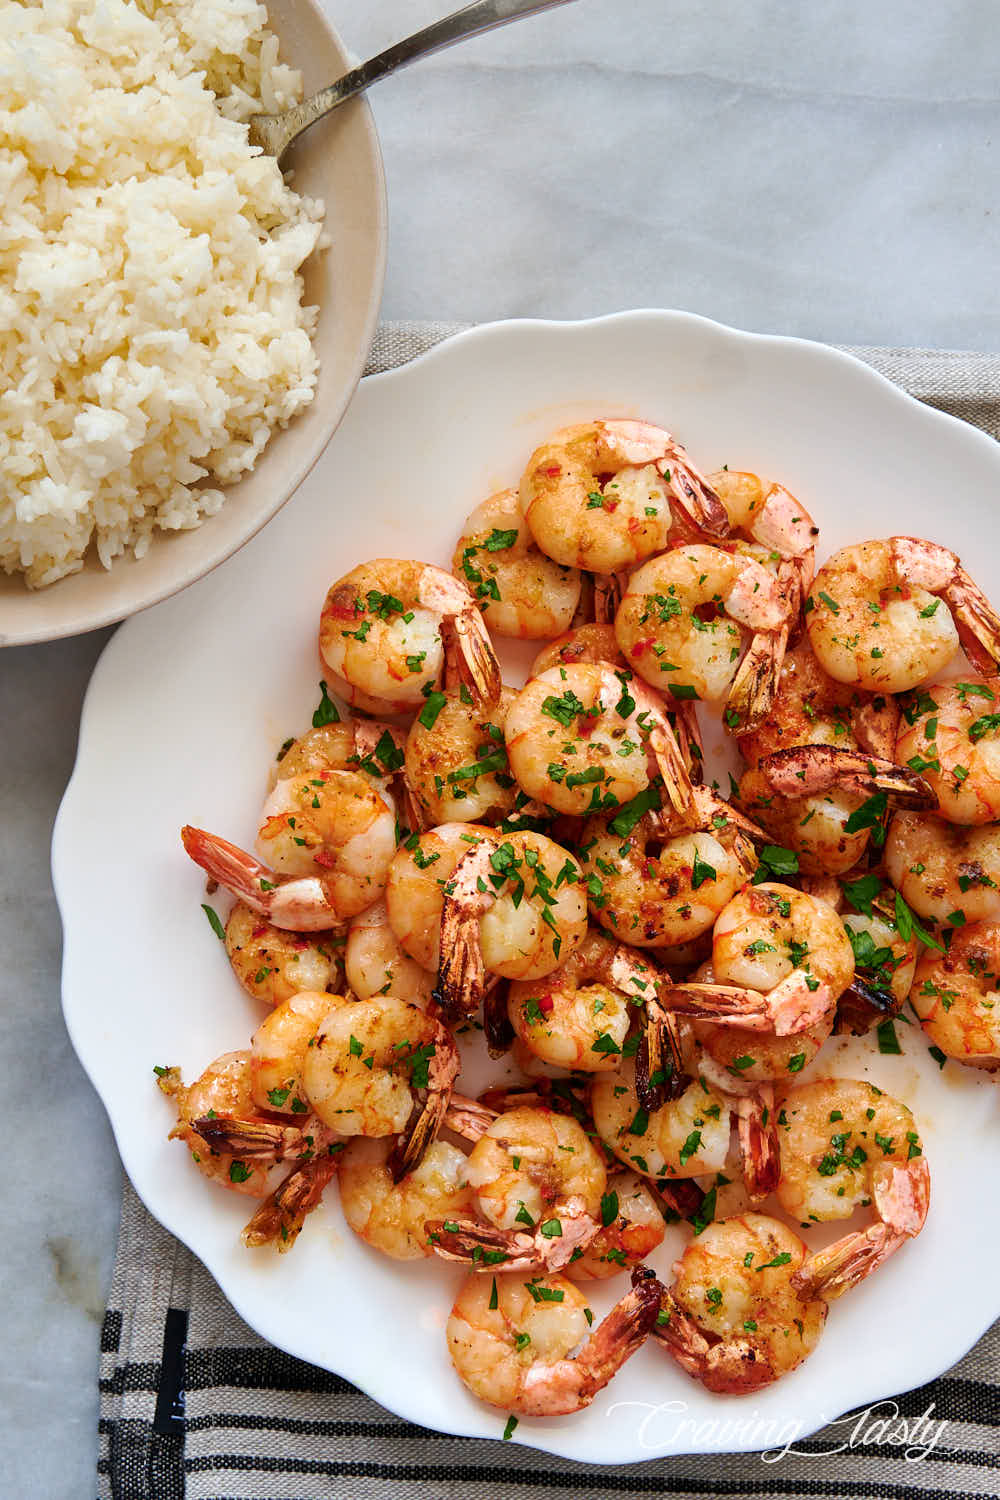 Shrimp and white rice.